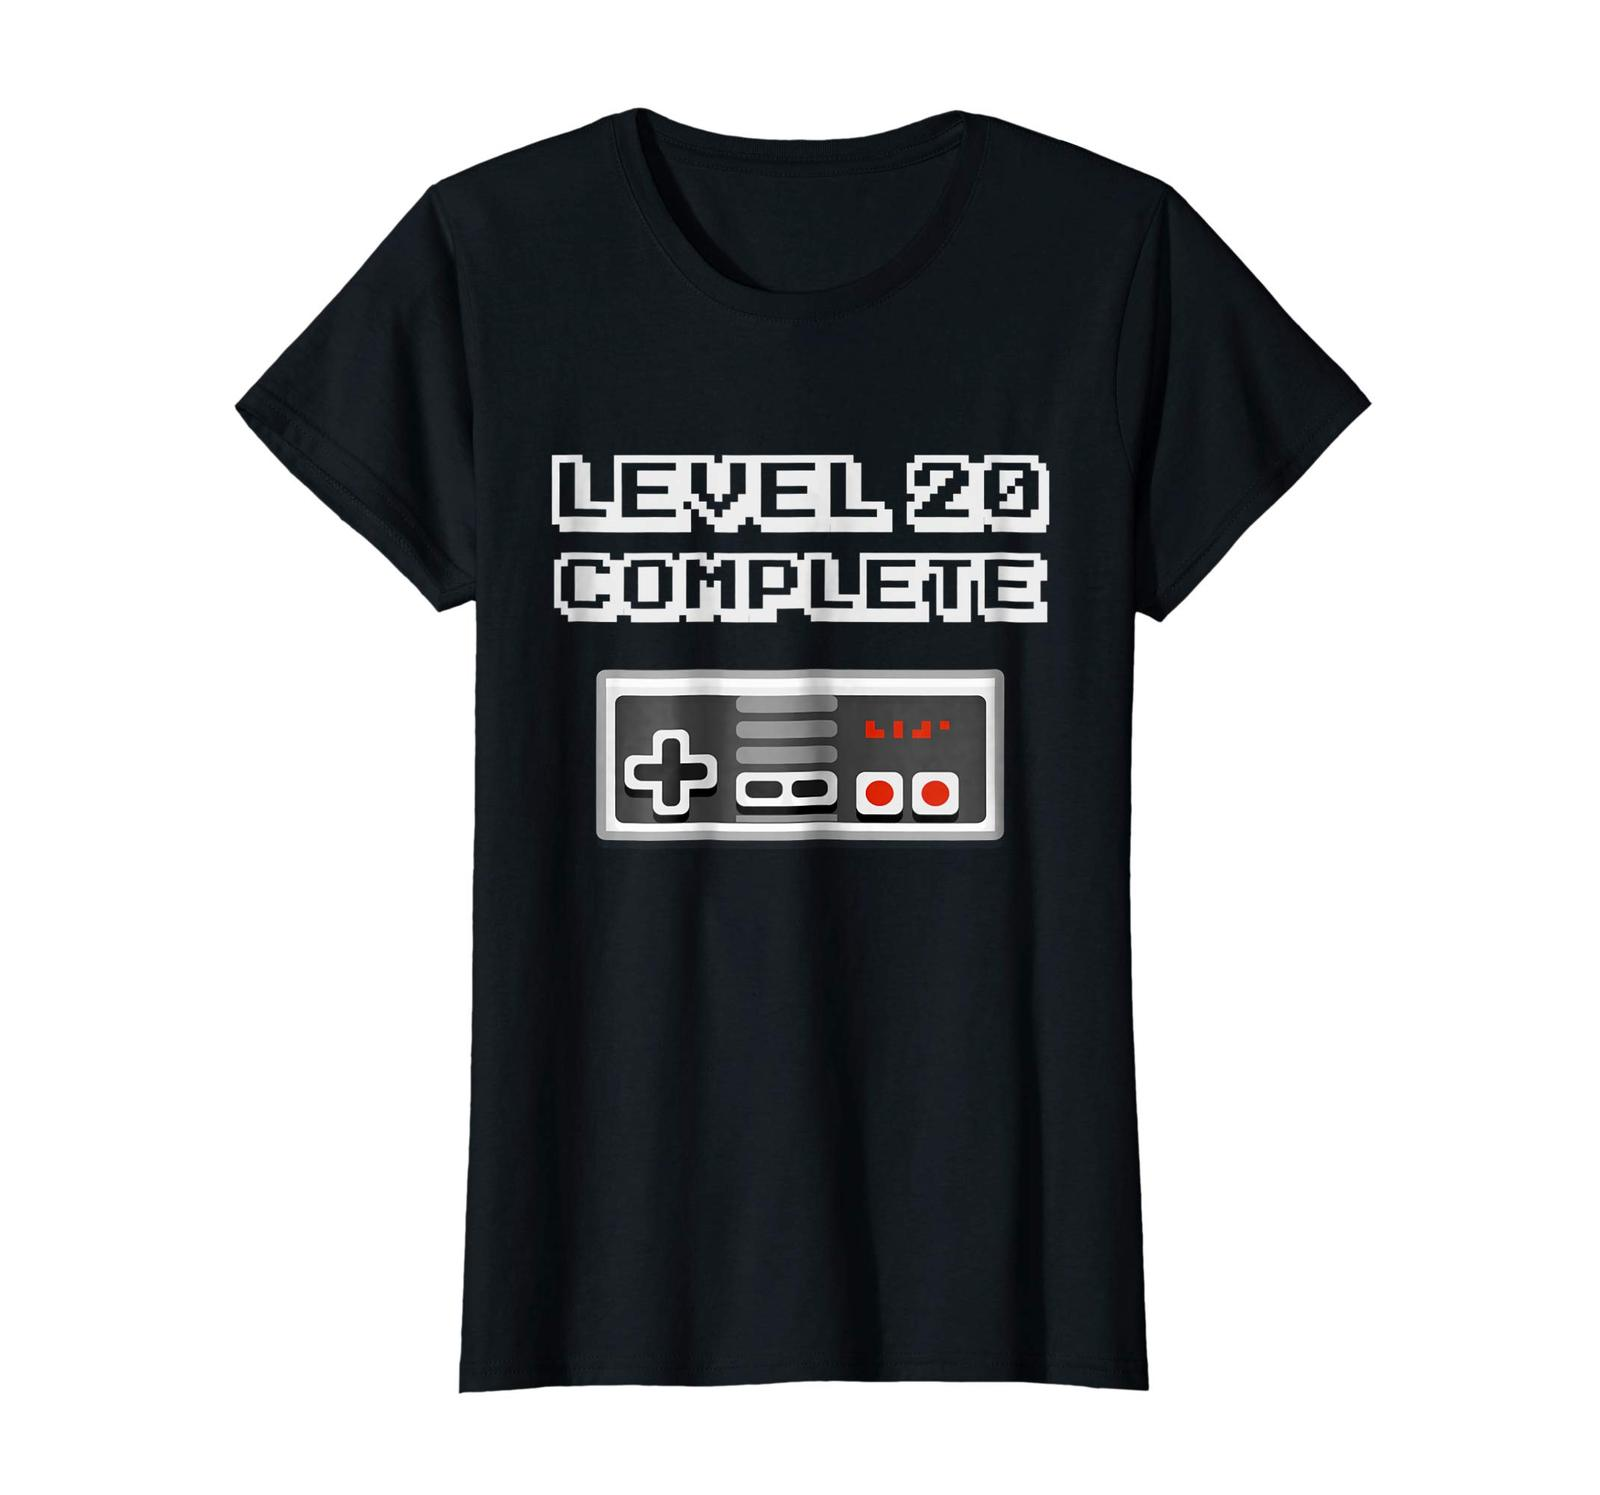 New Shirts - Level 20 Complete Retro Video Gamer 20th Birthday Gift Shirt Wowen image 2